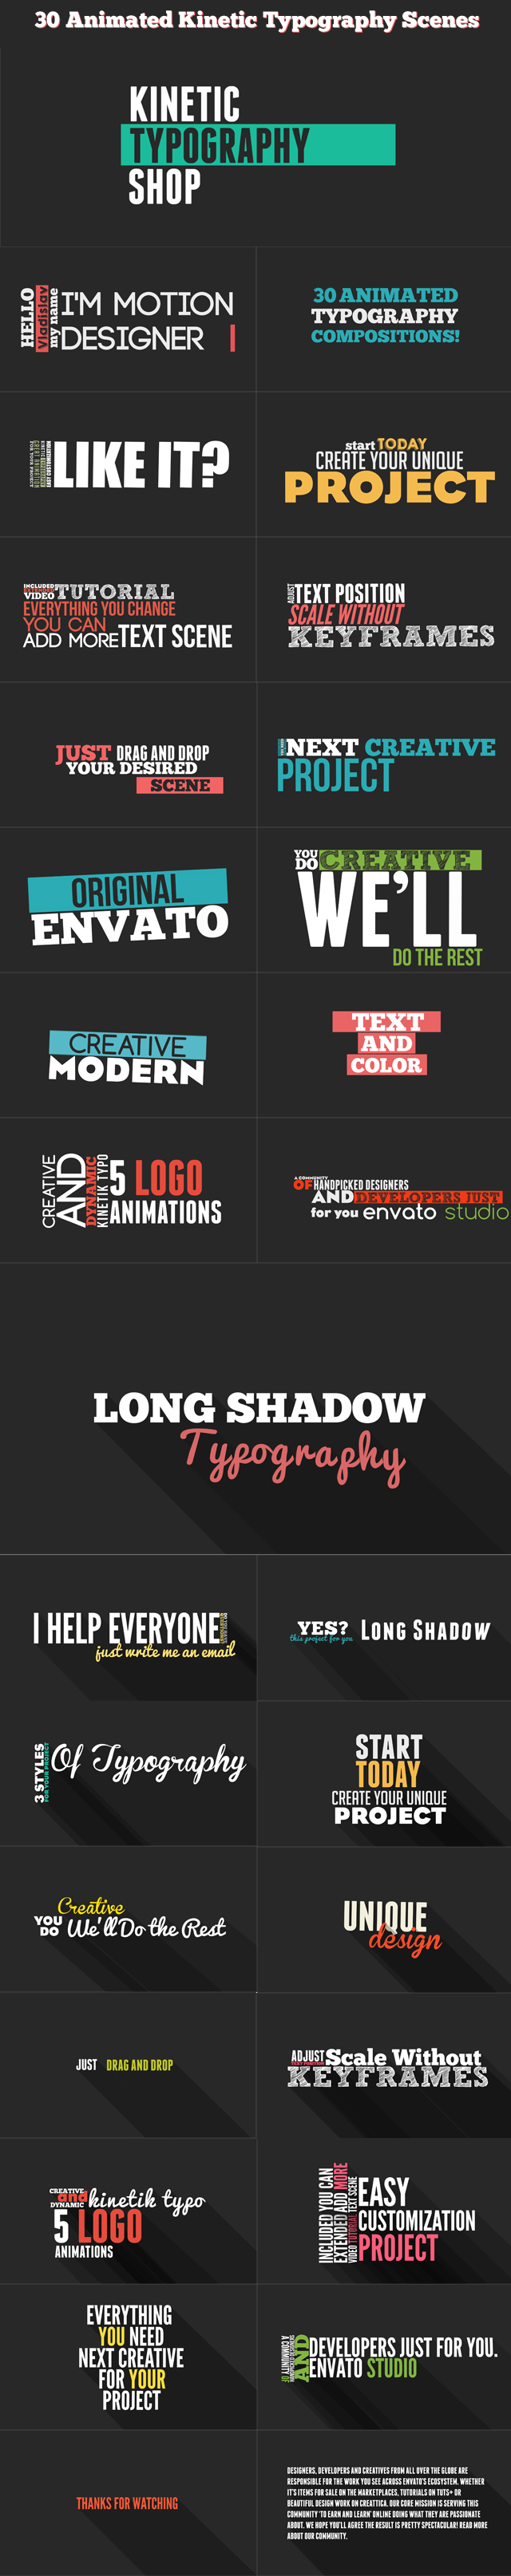 Kinetic Typography Shop | Typography, Template and Motion design